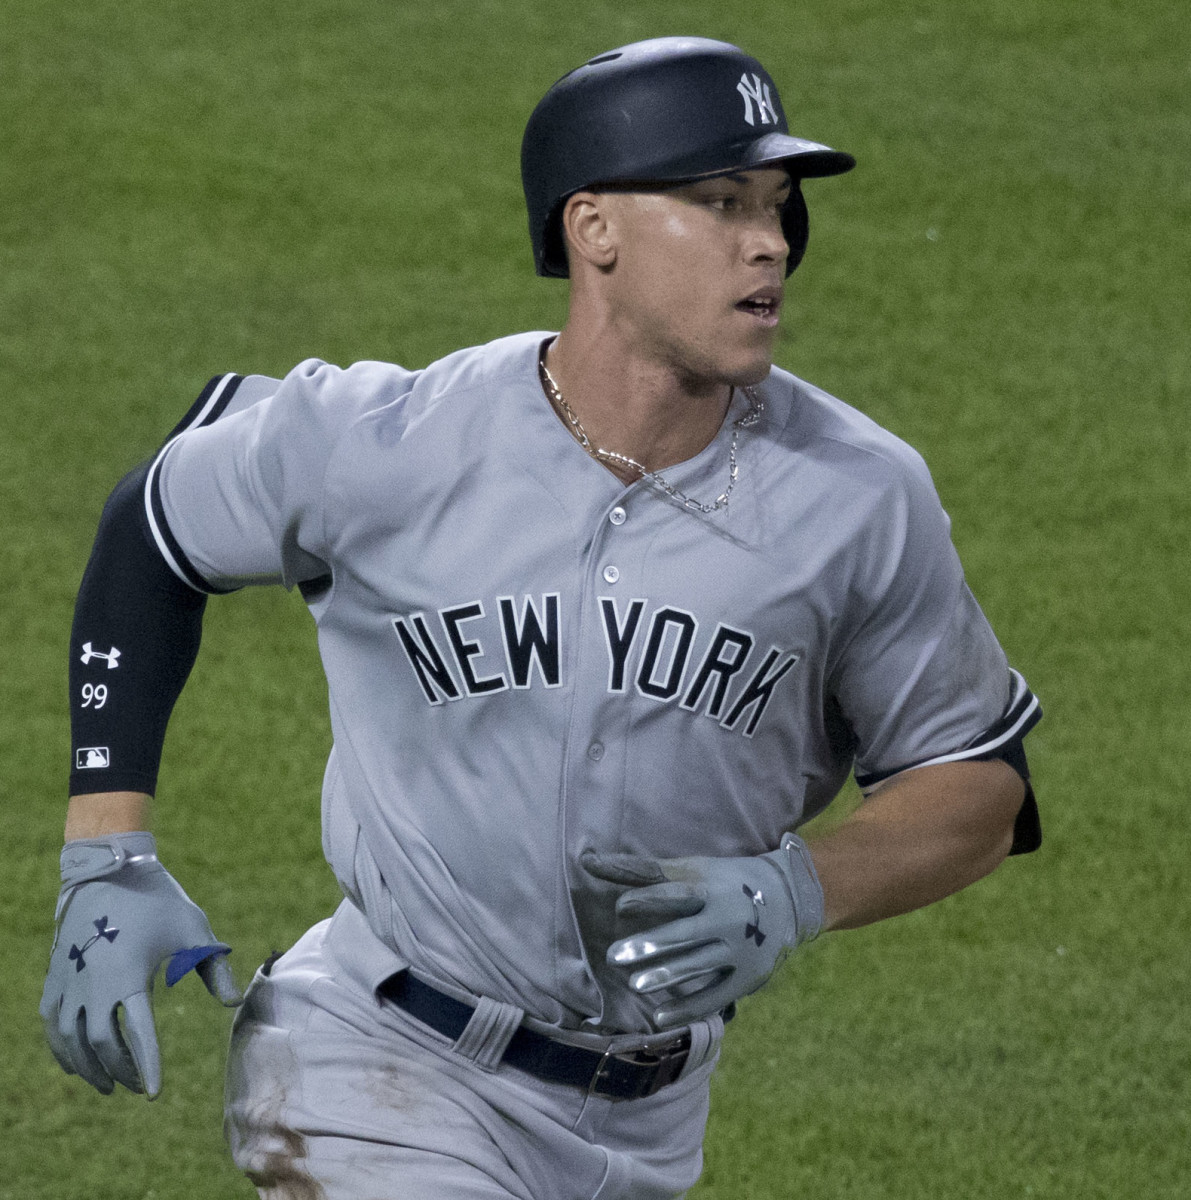 Aaron Judge Had the Greatest Rookie Season Ever